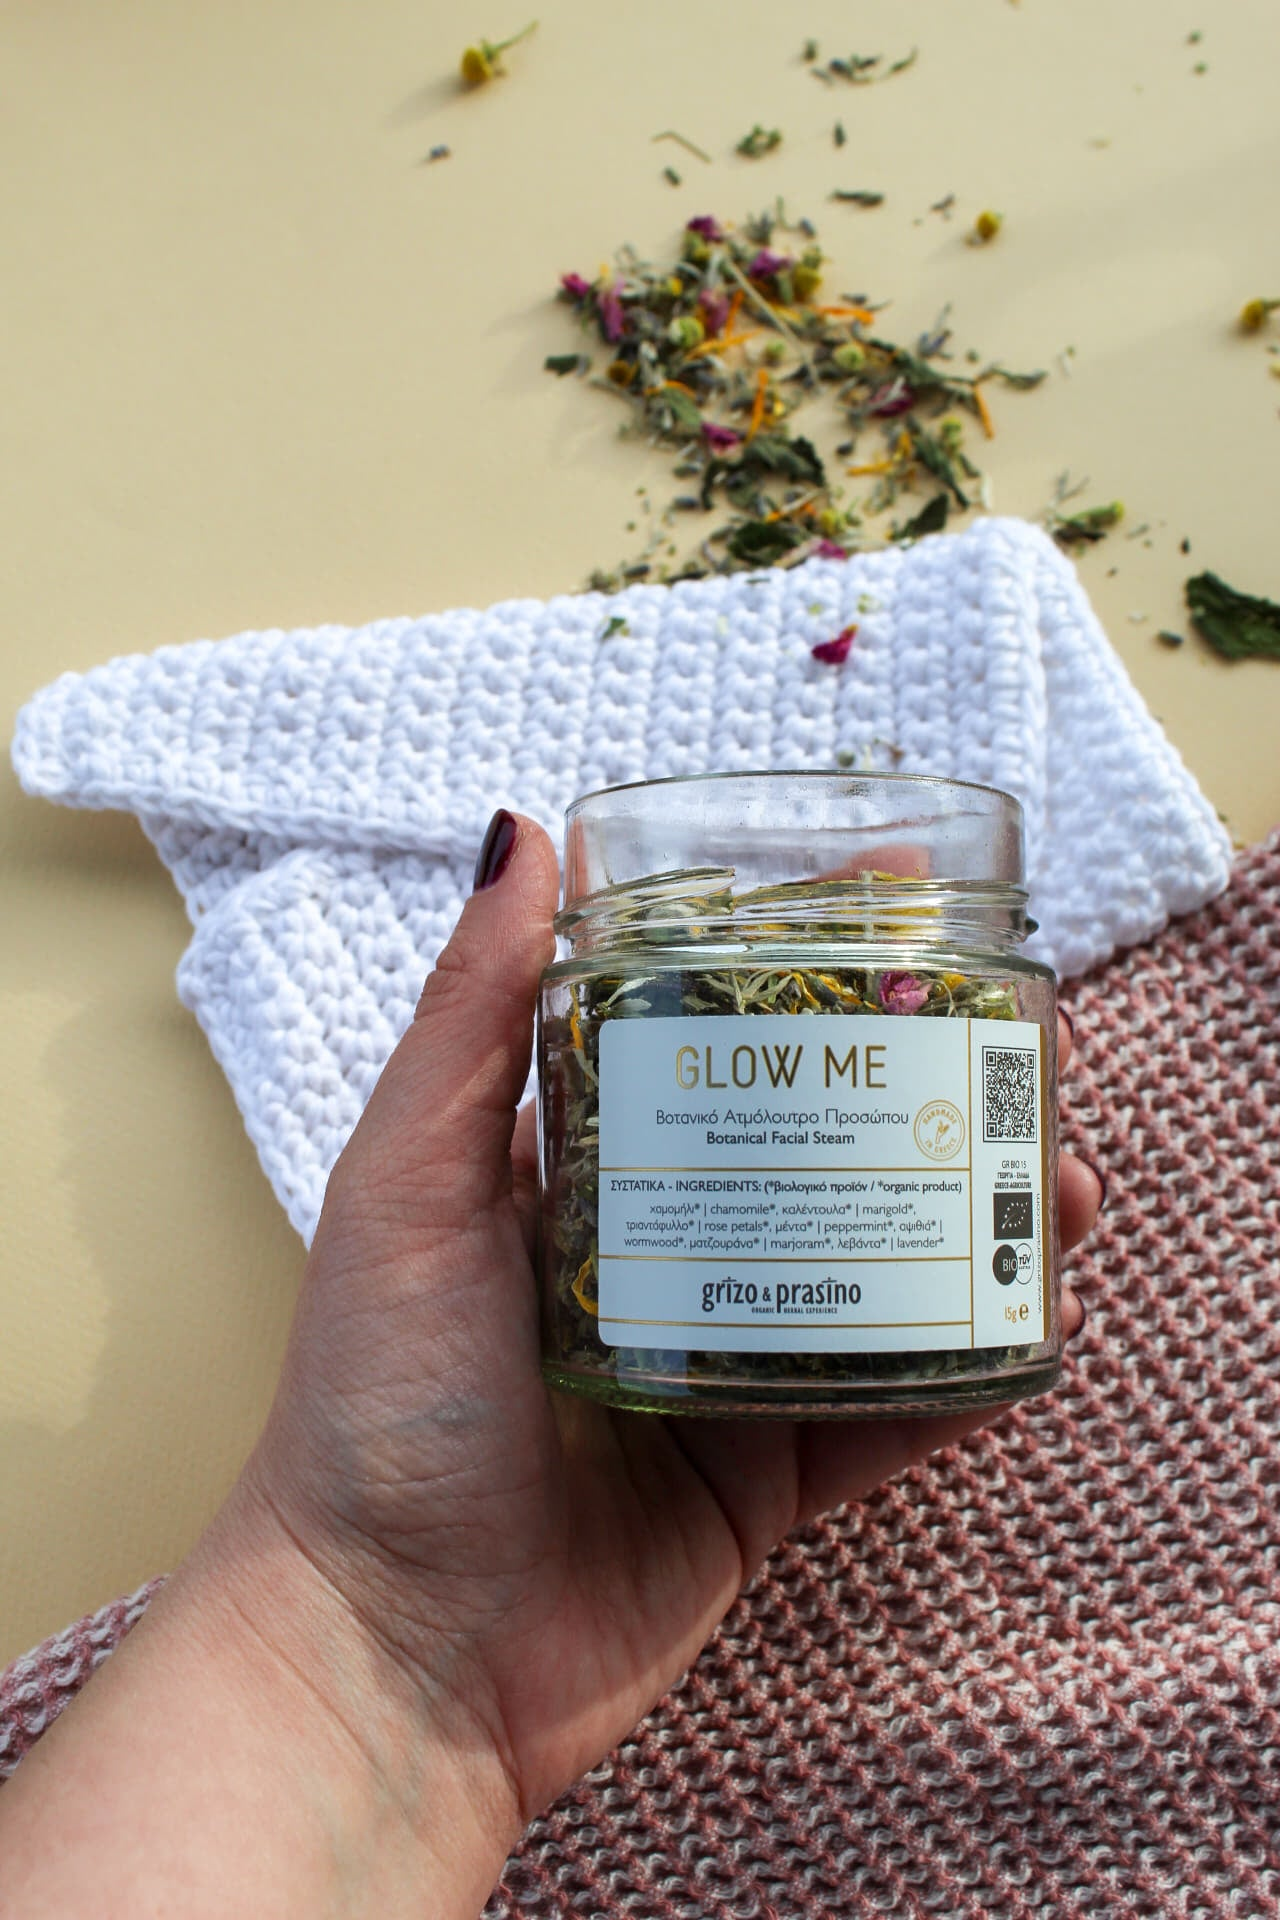 Glow me (Herbal Facial Steam)